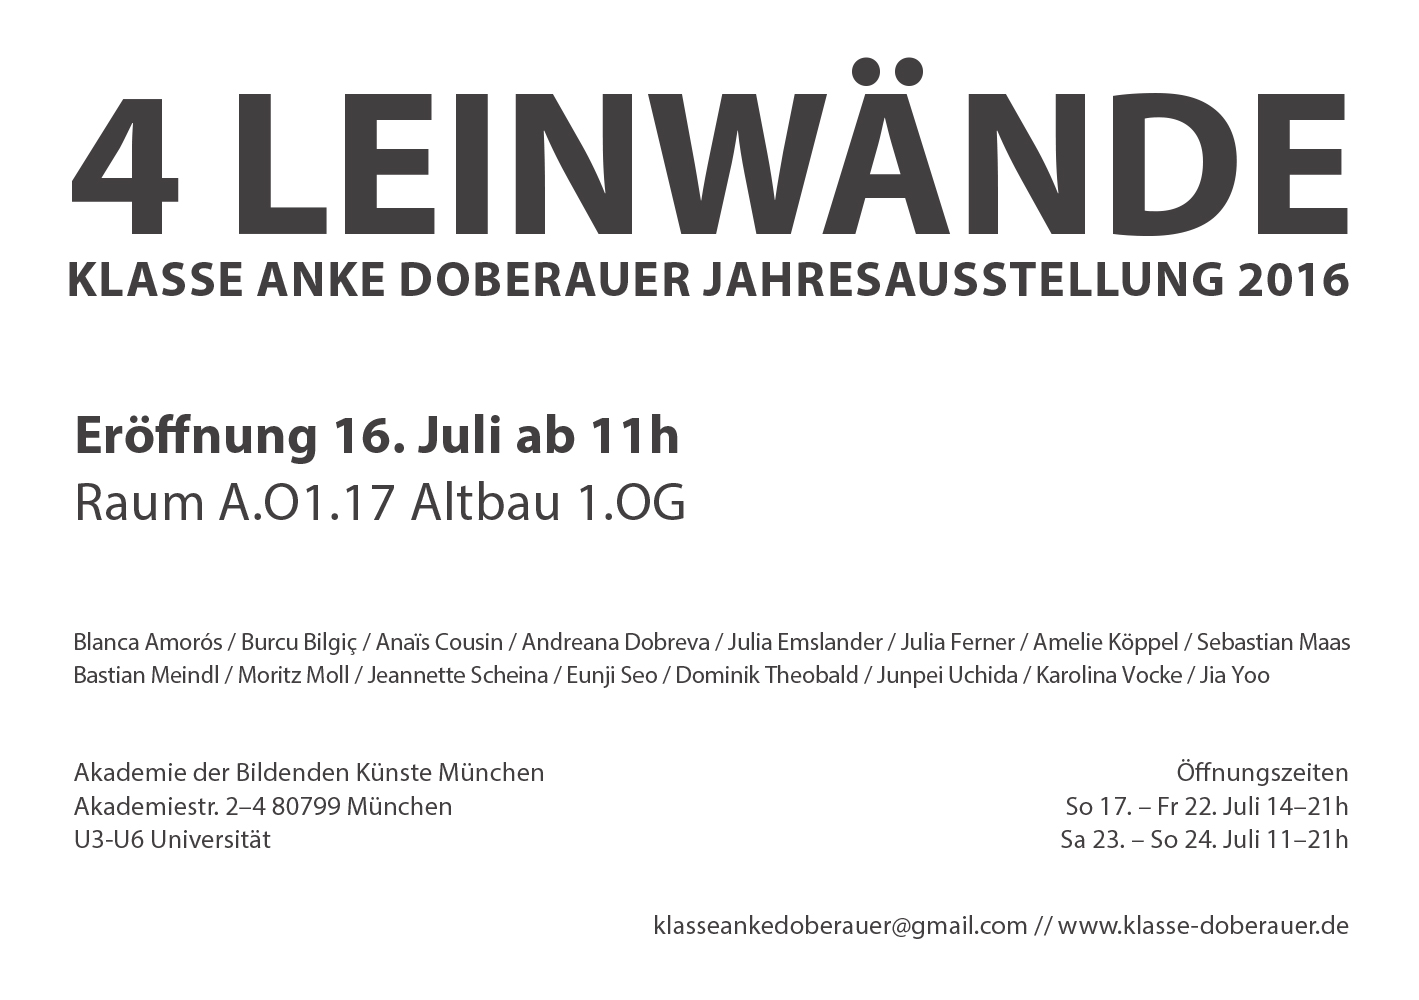 4 LEINWÄNDE. Exhibition